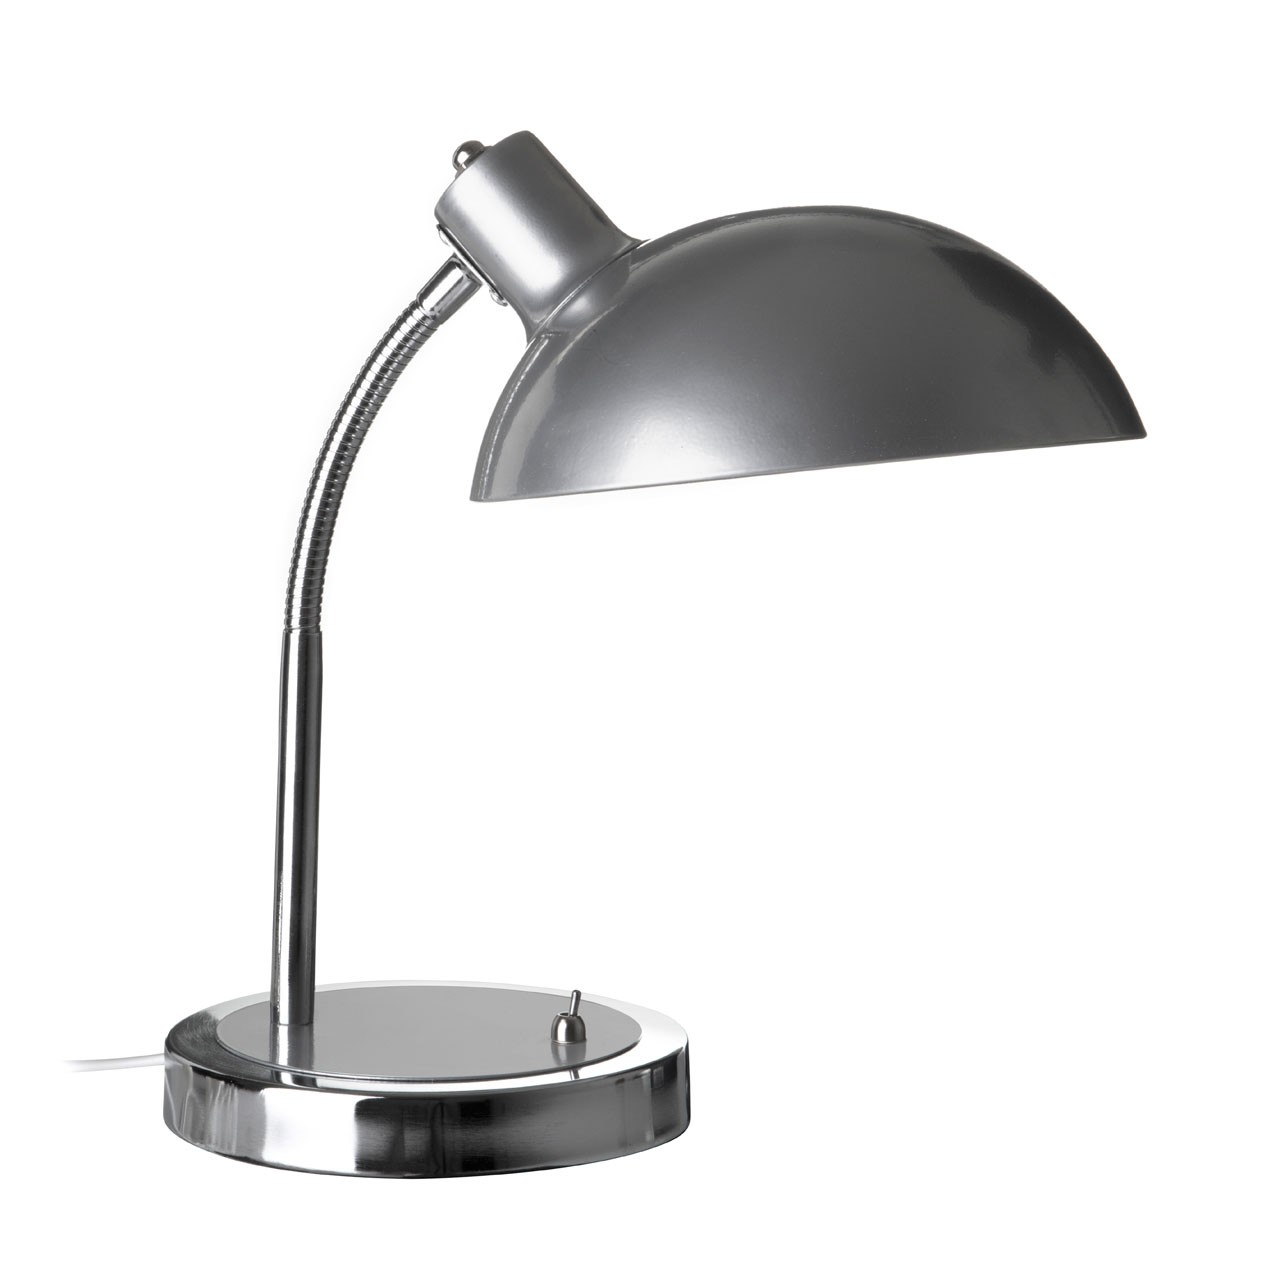 Prime Furnishing Flexible Metal Desk Lamp - Silver